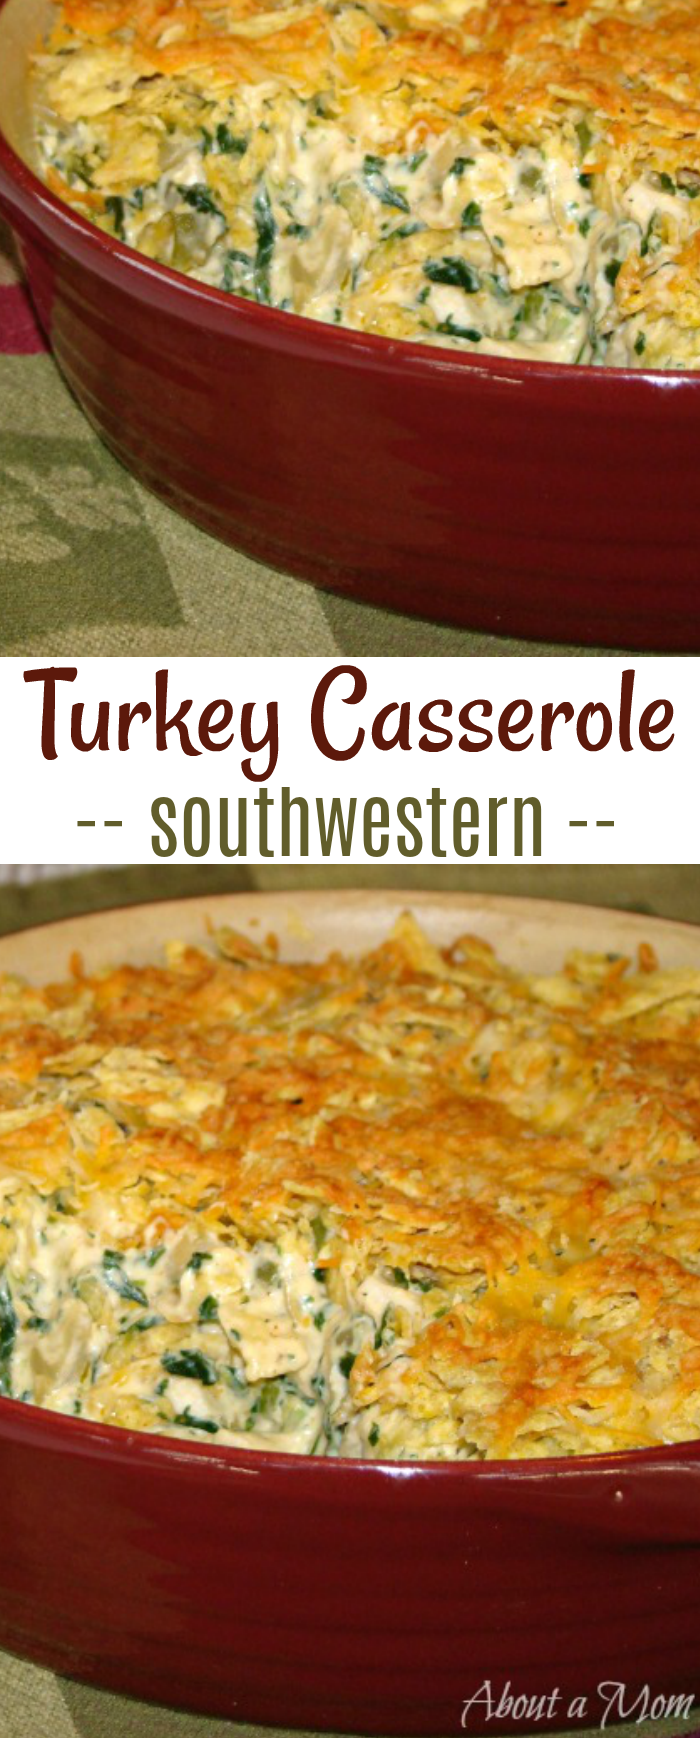 Southwestern Turkey Casserole is a great recipe for using up holiday turkey leftovers.